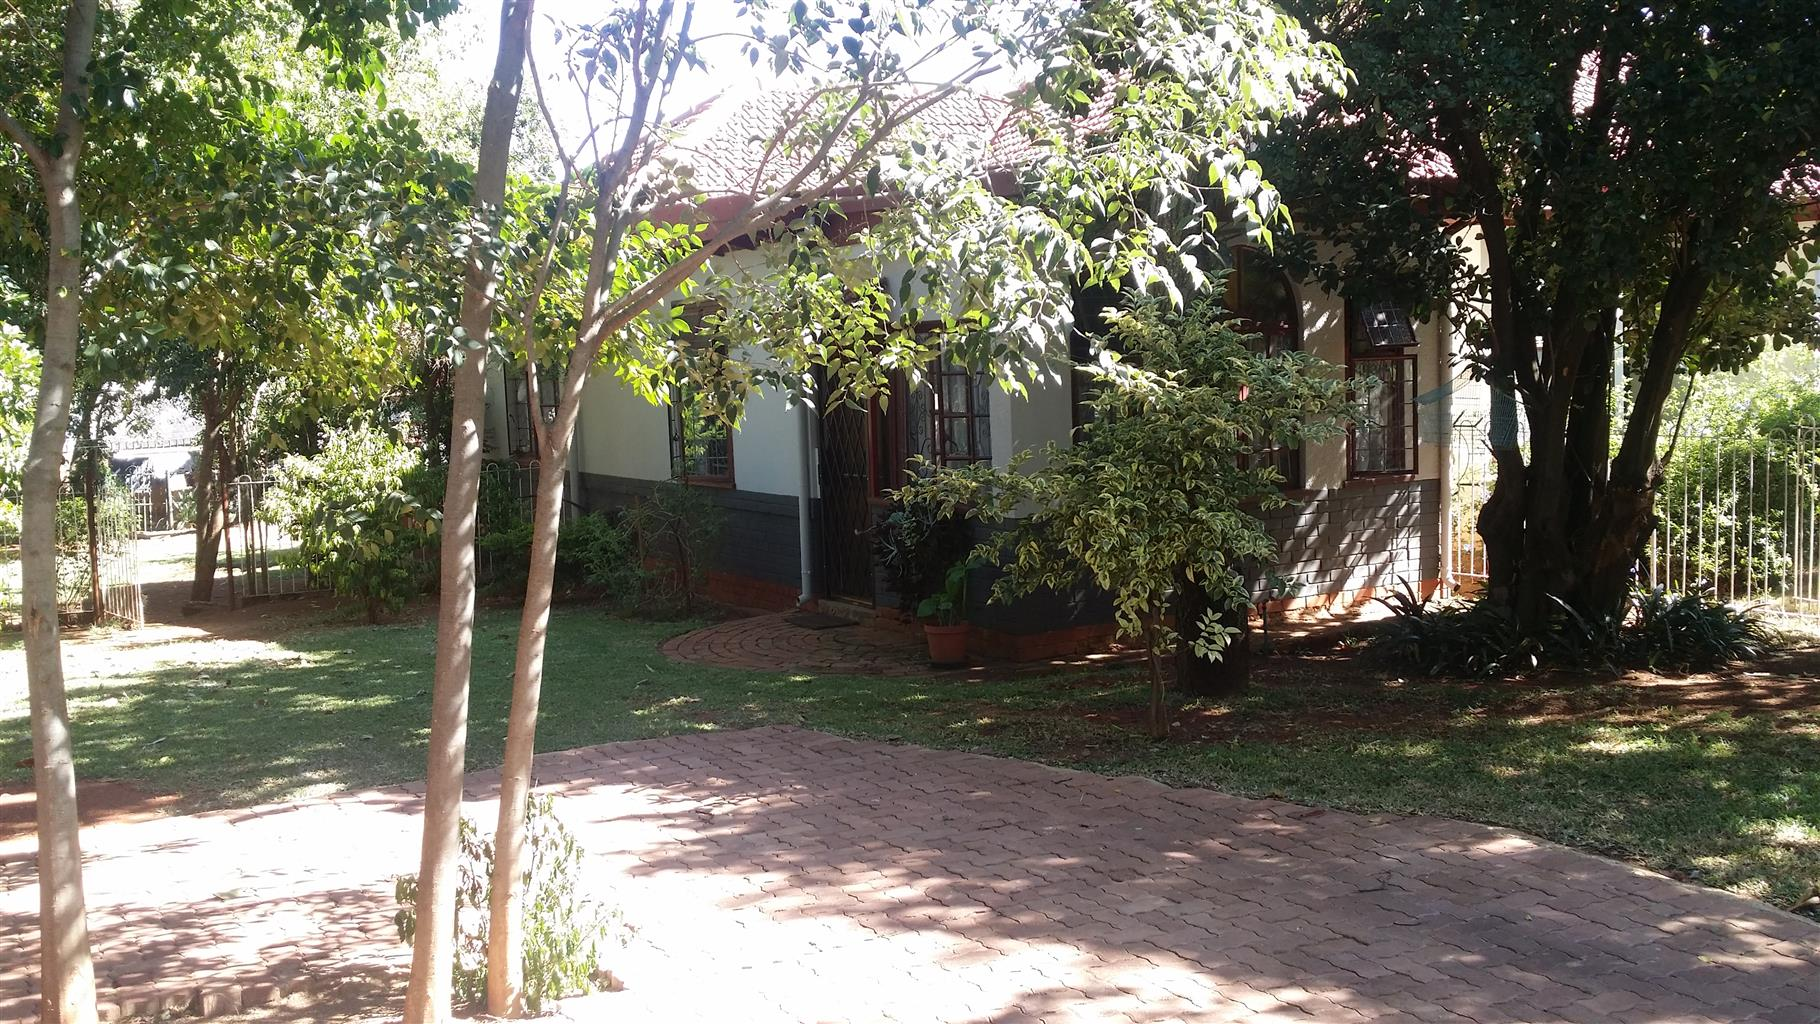 EASTWOOD Pretoria: Embassy area between Union Building and Presidential Residence